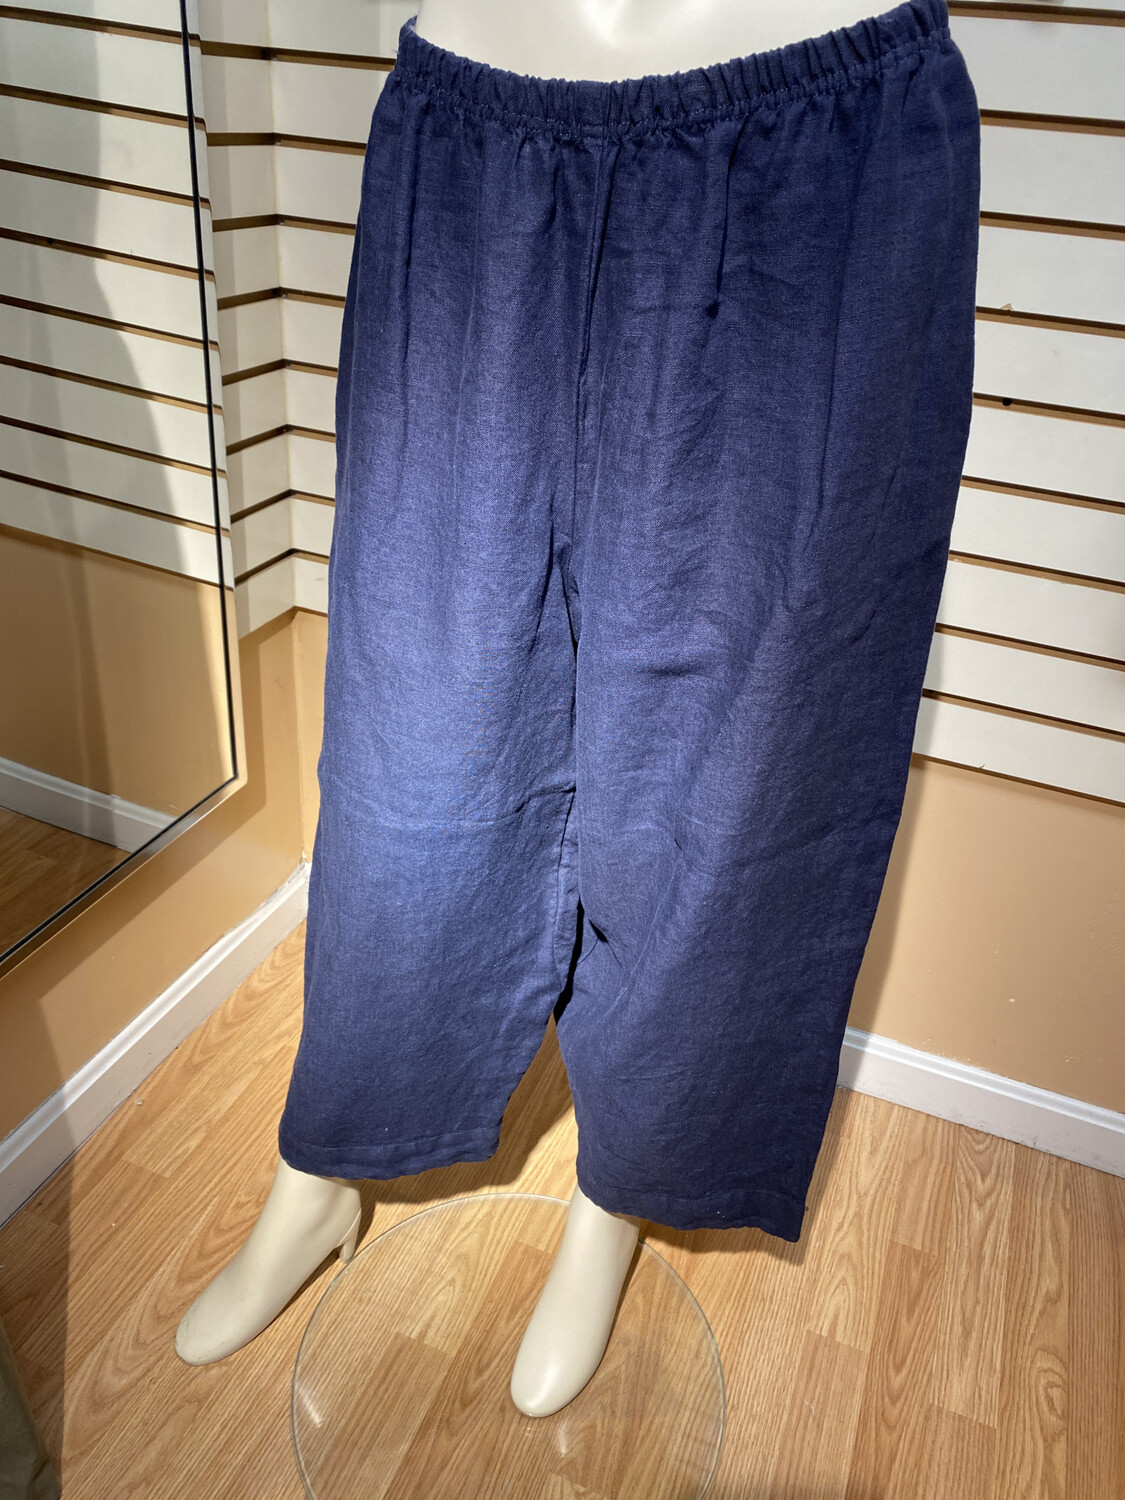 Major Deal Cut Loose Navy Linen Pant. So Comfy. Only 1 Small Fits Like Roomy 6/8